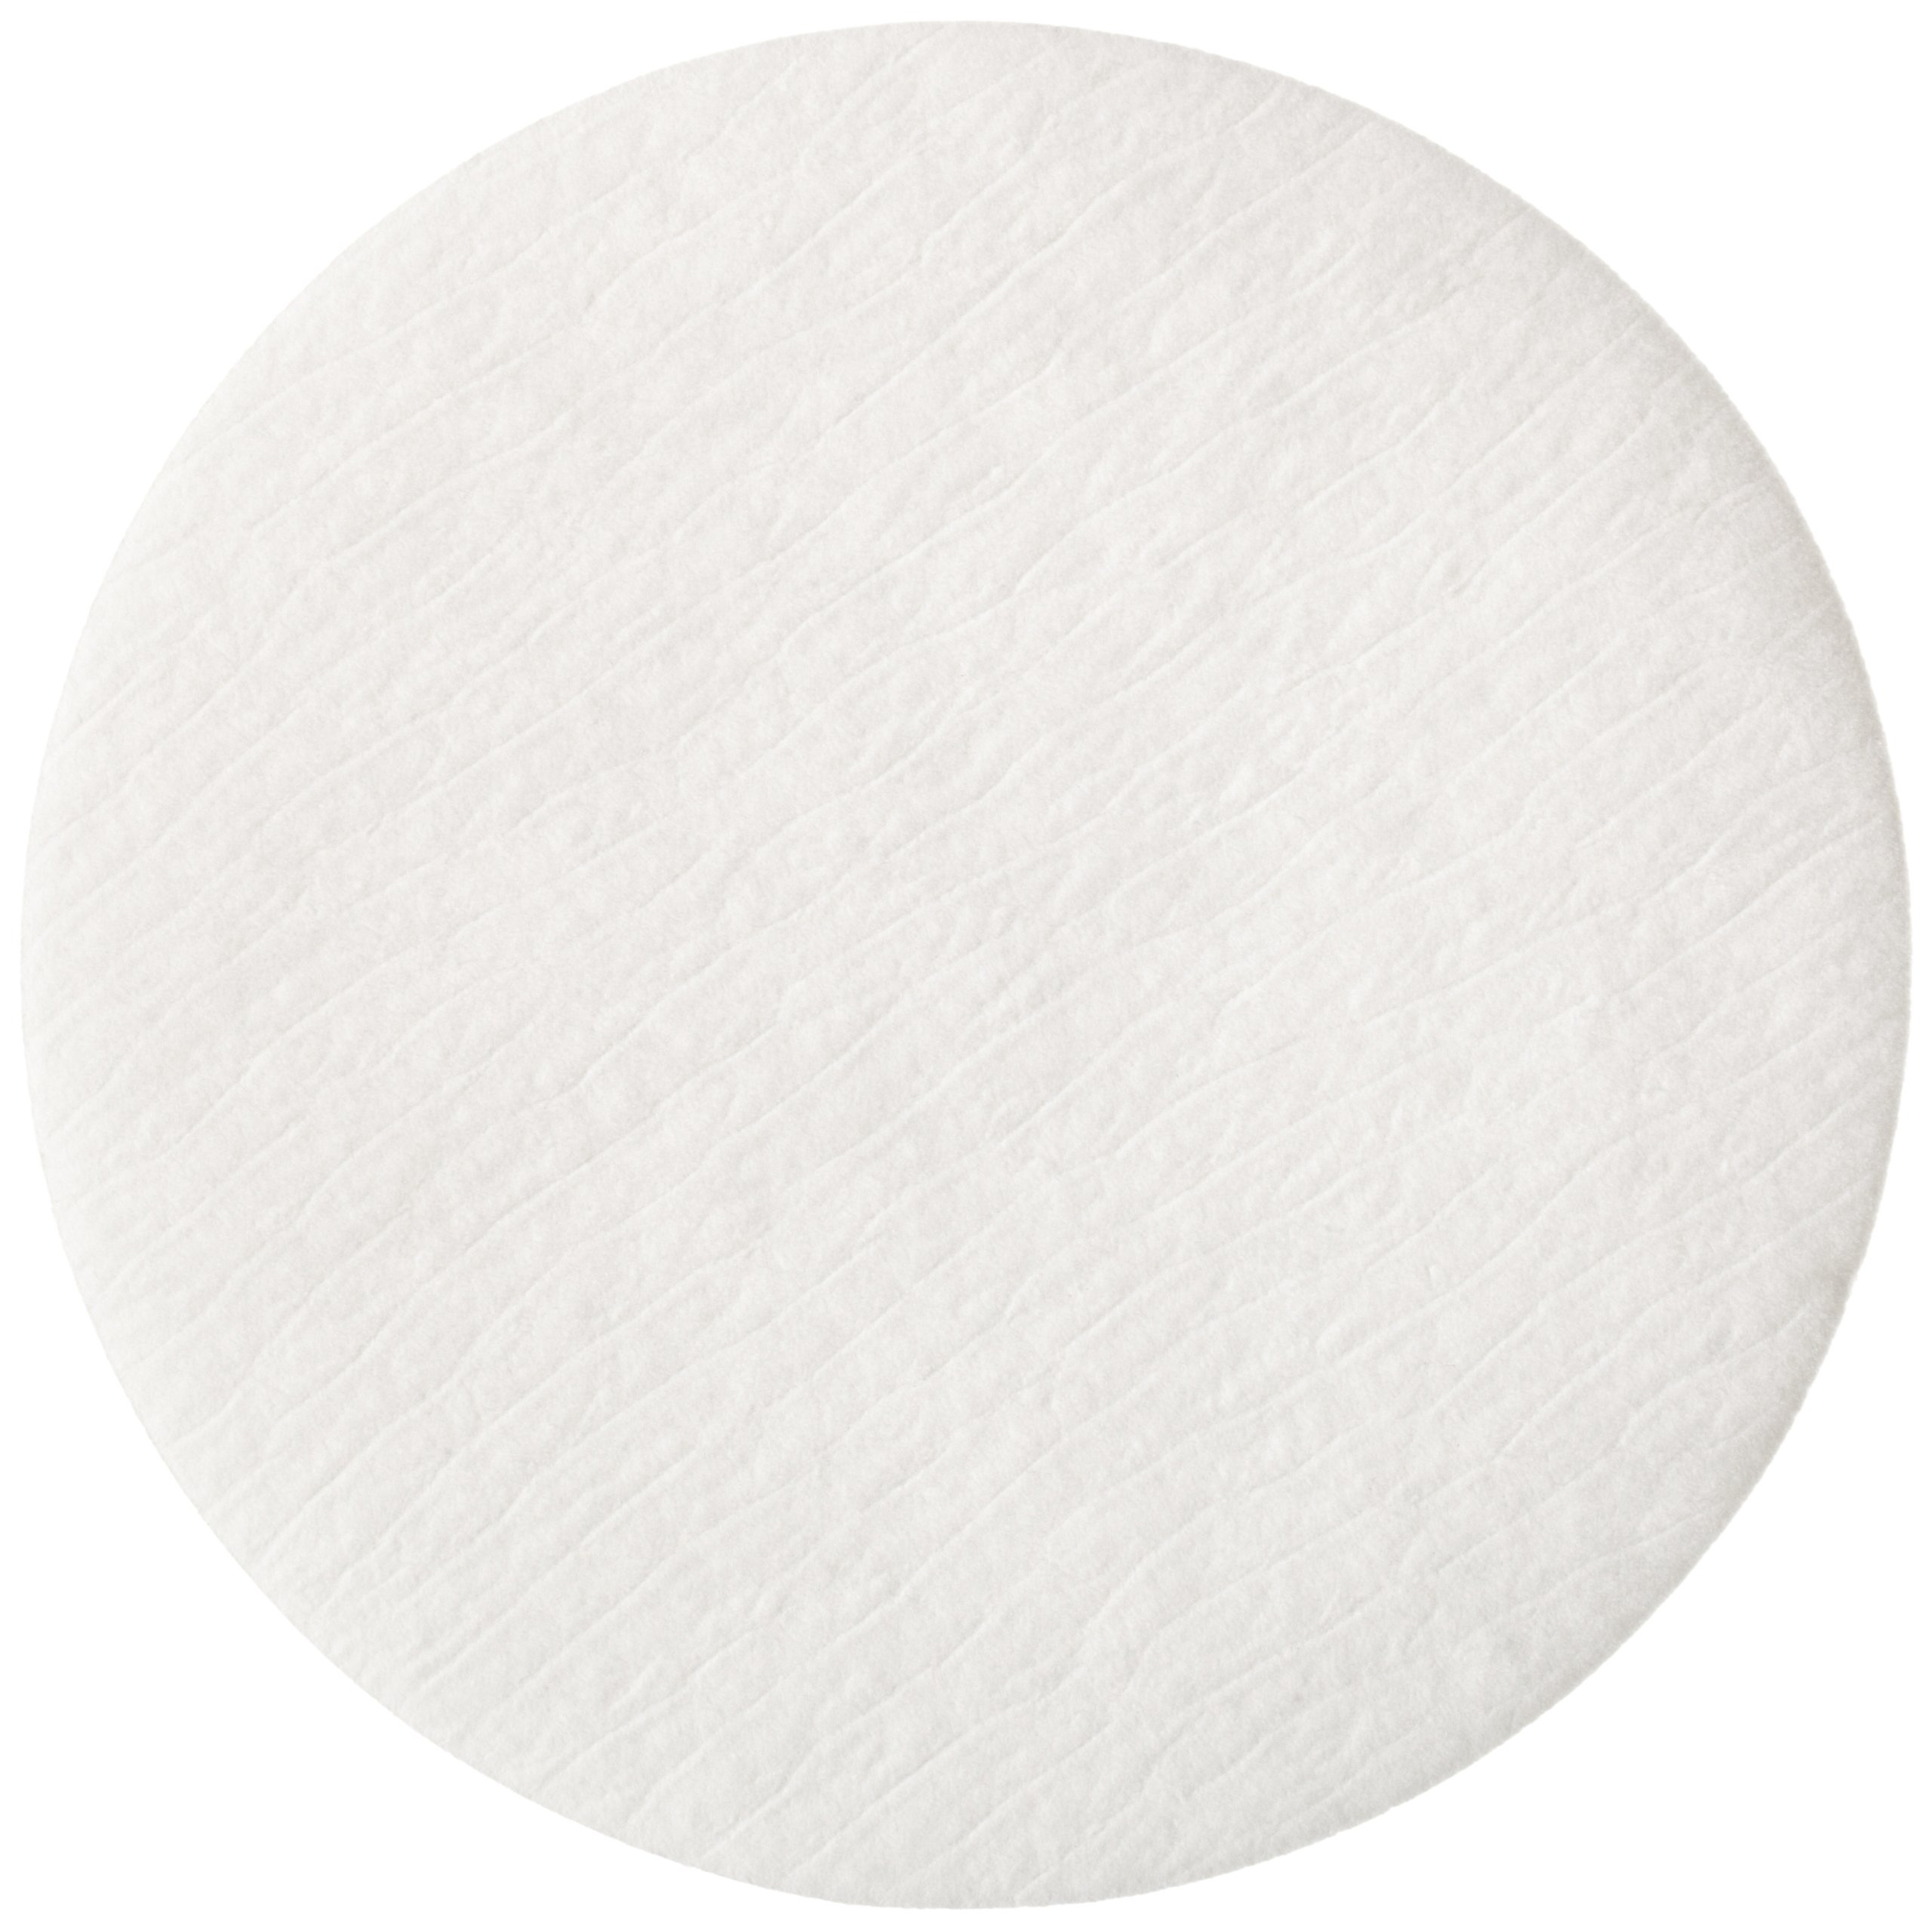 Ahlstrom 6170-1100 Qualitative Filter Paper, 11cm Diameter, 35 Micron, Fast Flow, Grade 617 (Pack of 50) by Ahlstrom